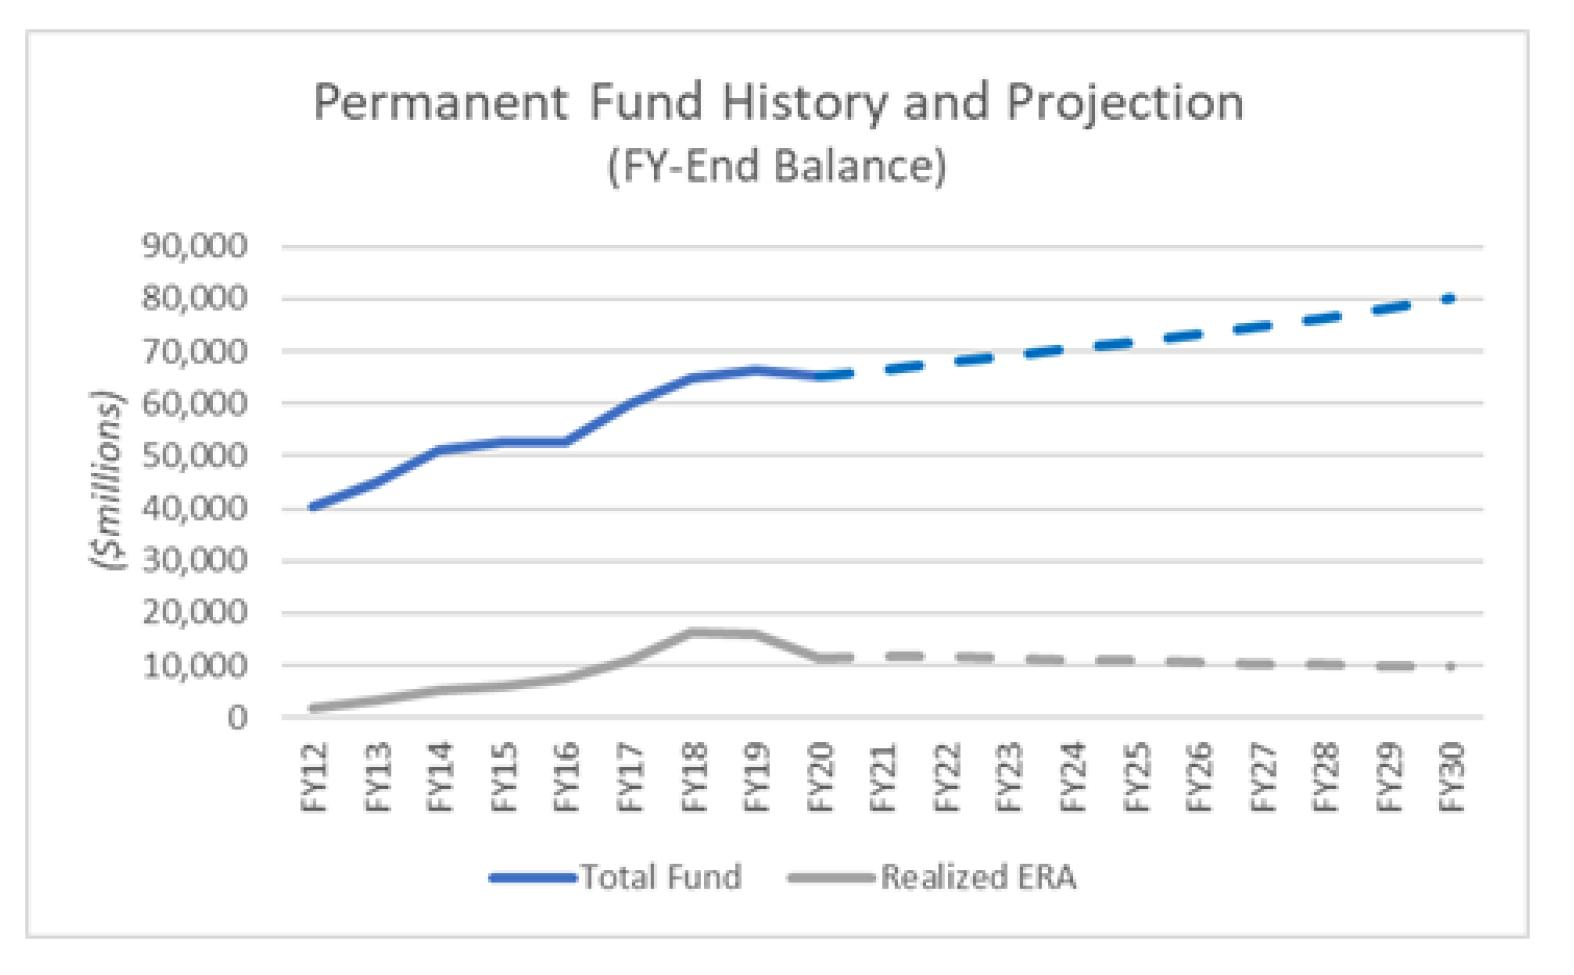 Permanent Fund History and Projection